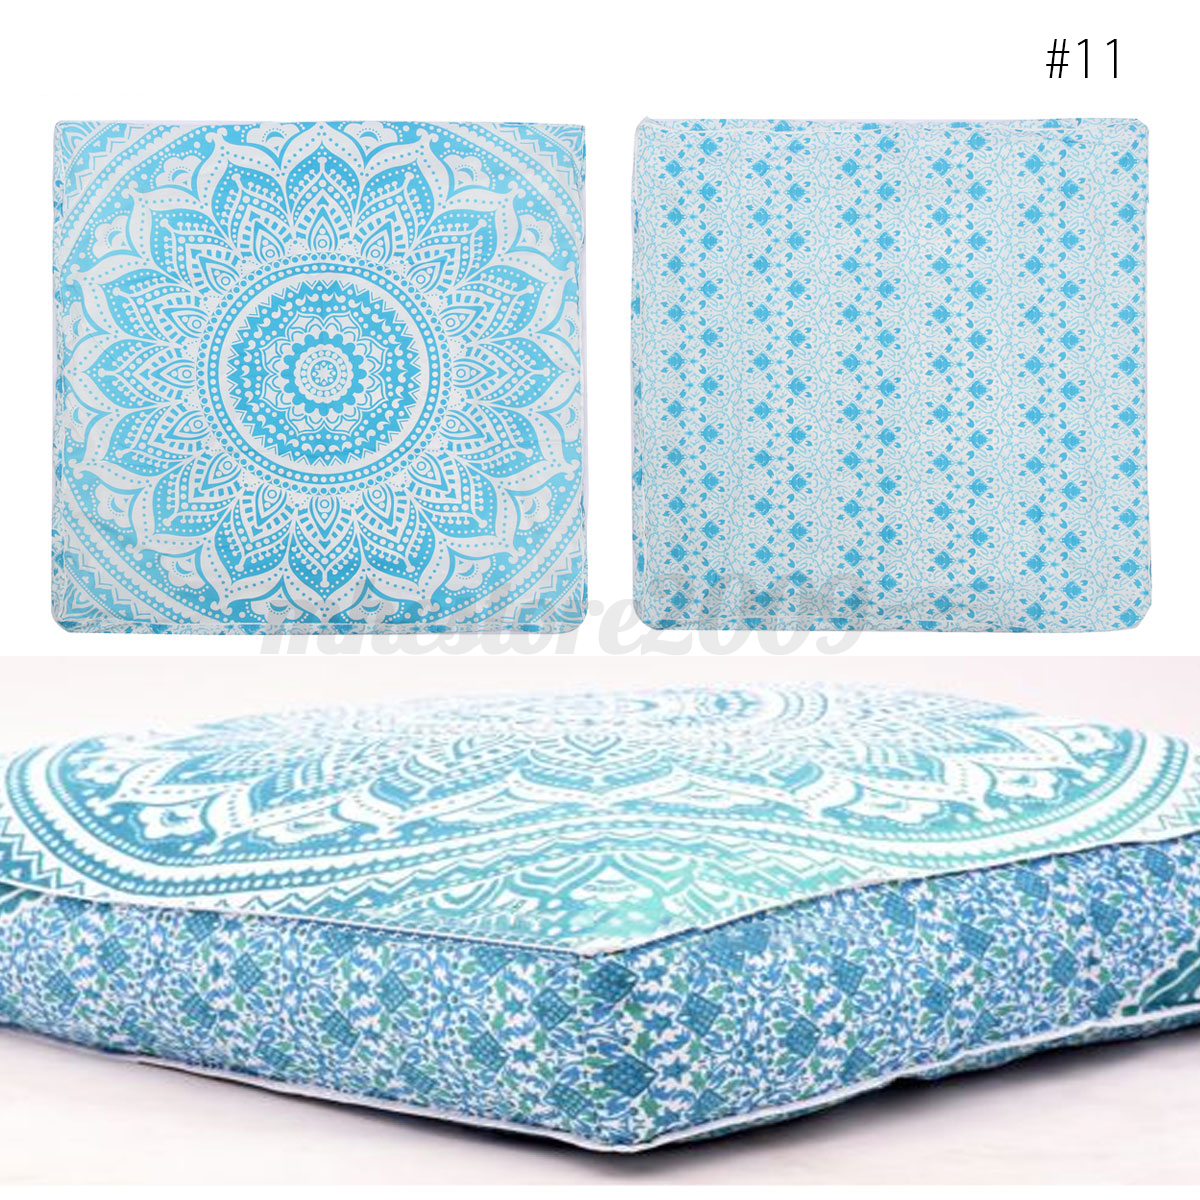 Large Floor Pillow Cases : Bohemian Large Mandala Square Floor Pillow Throw Case Indian Cushion Cover Pouf eBay